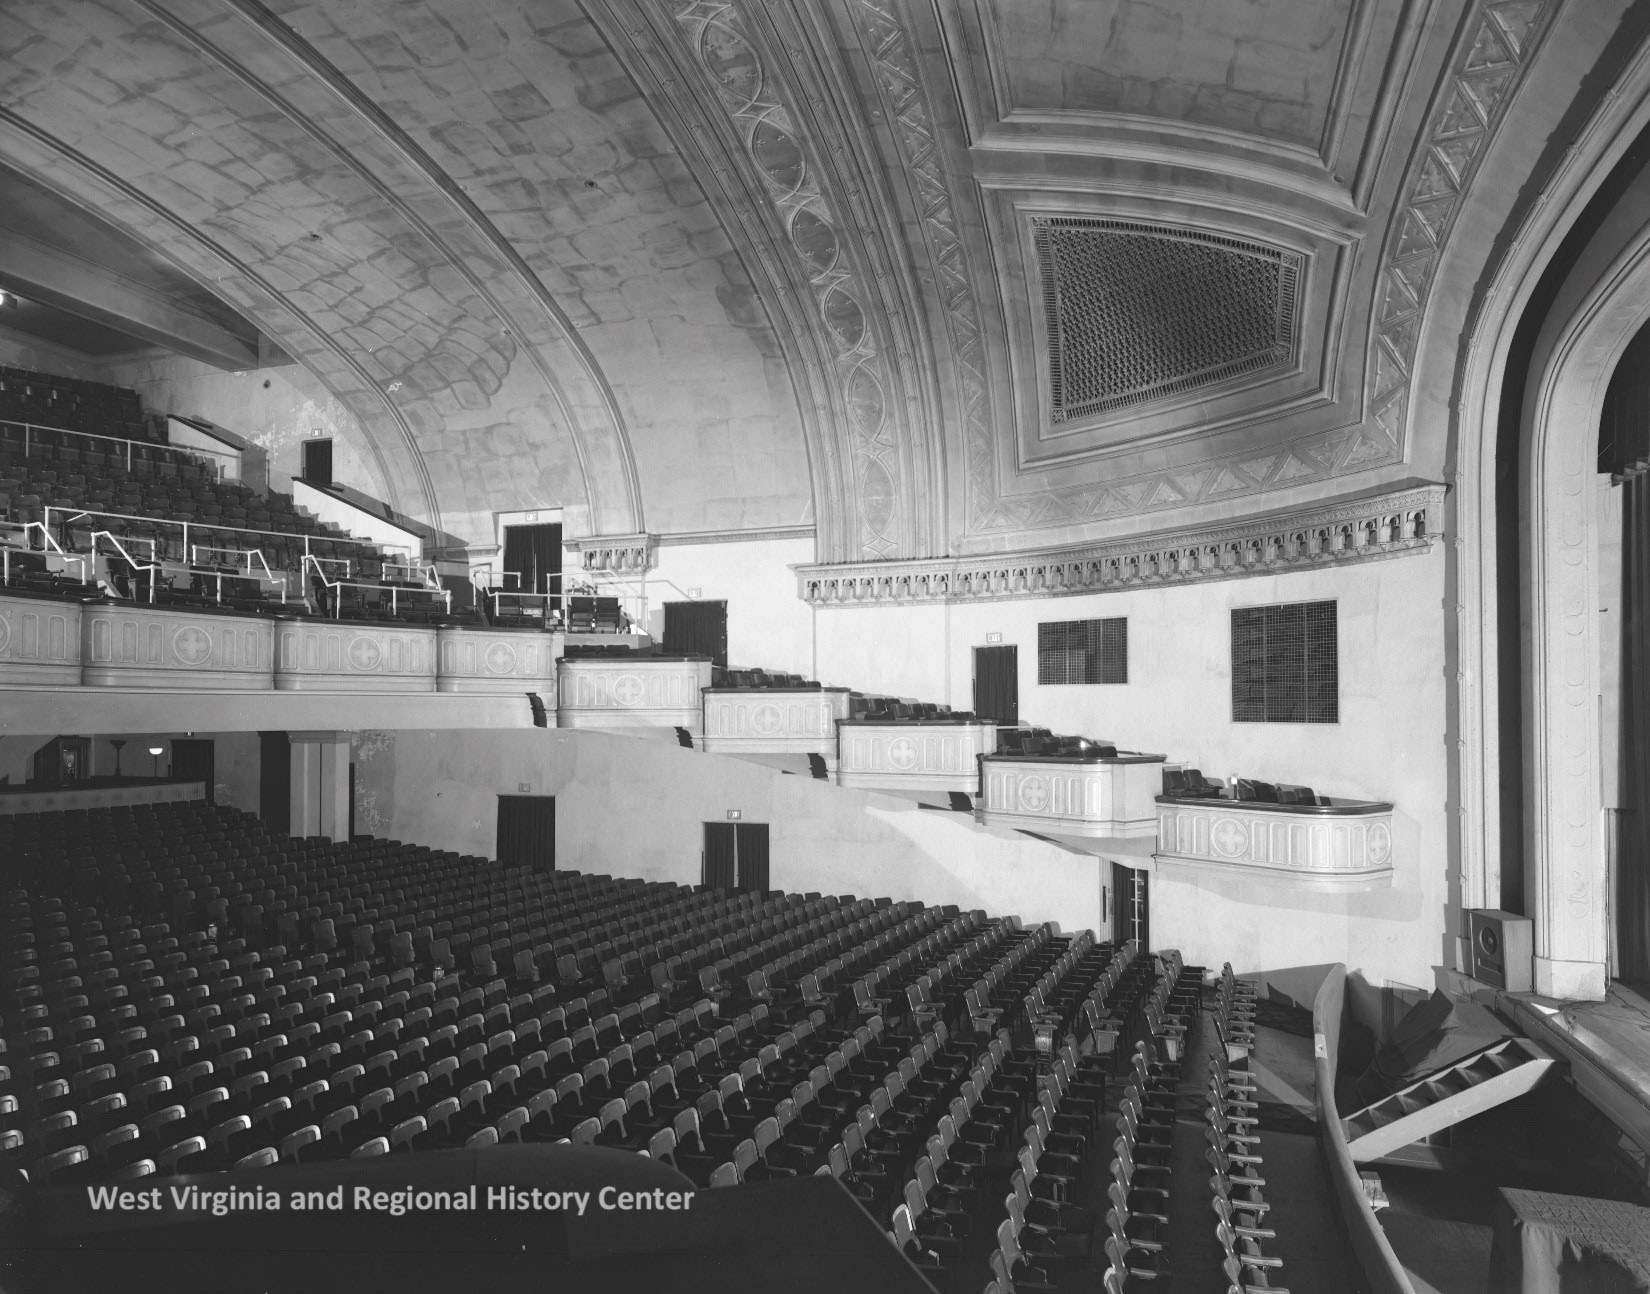 Interior of Kearse Theater in Charleston, WV